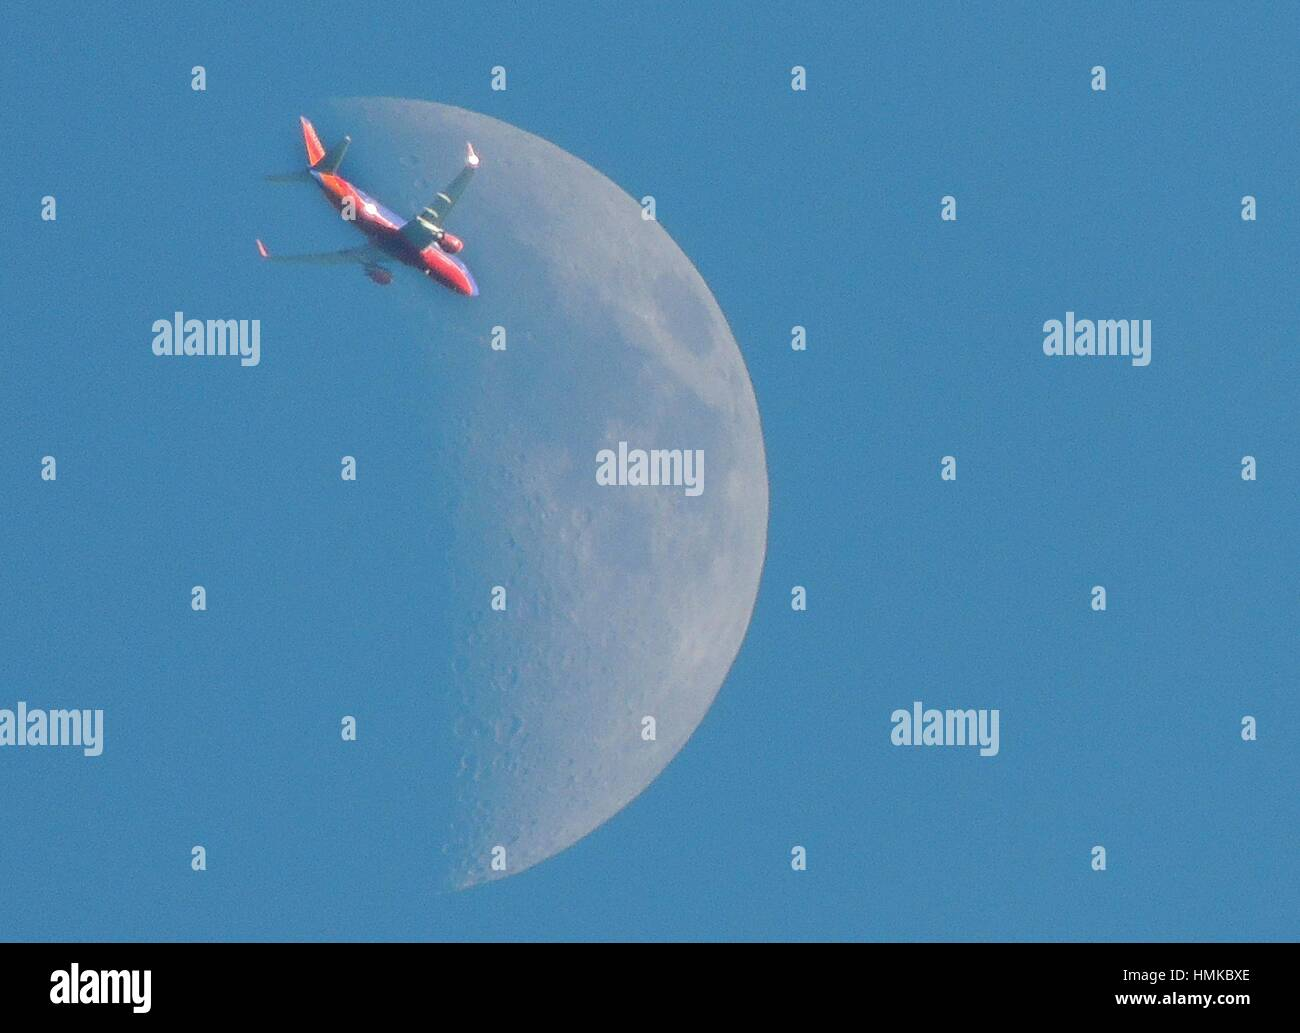 A colorful jetliner seems to head for the moon, Pennsylvania, USA. - Stock Image